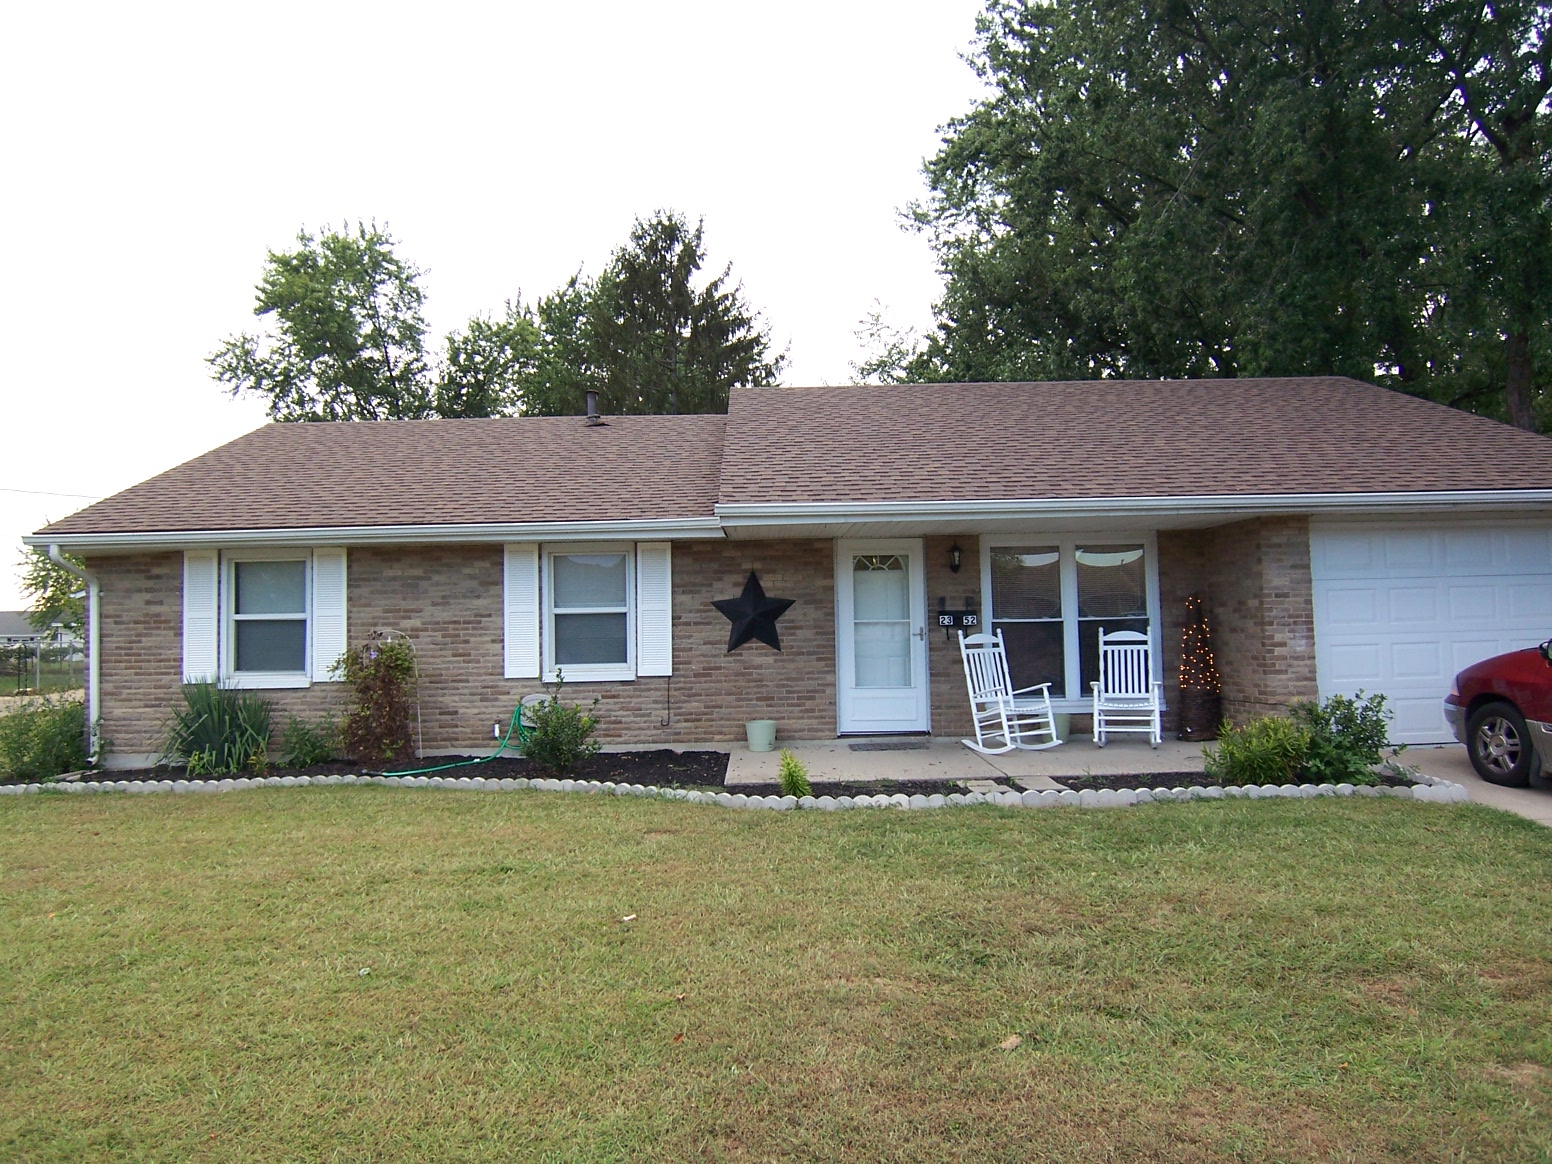 xenia affordable real estate welcome home dayton